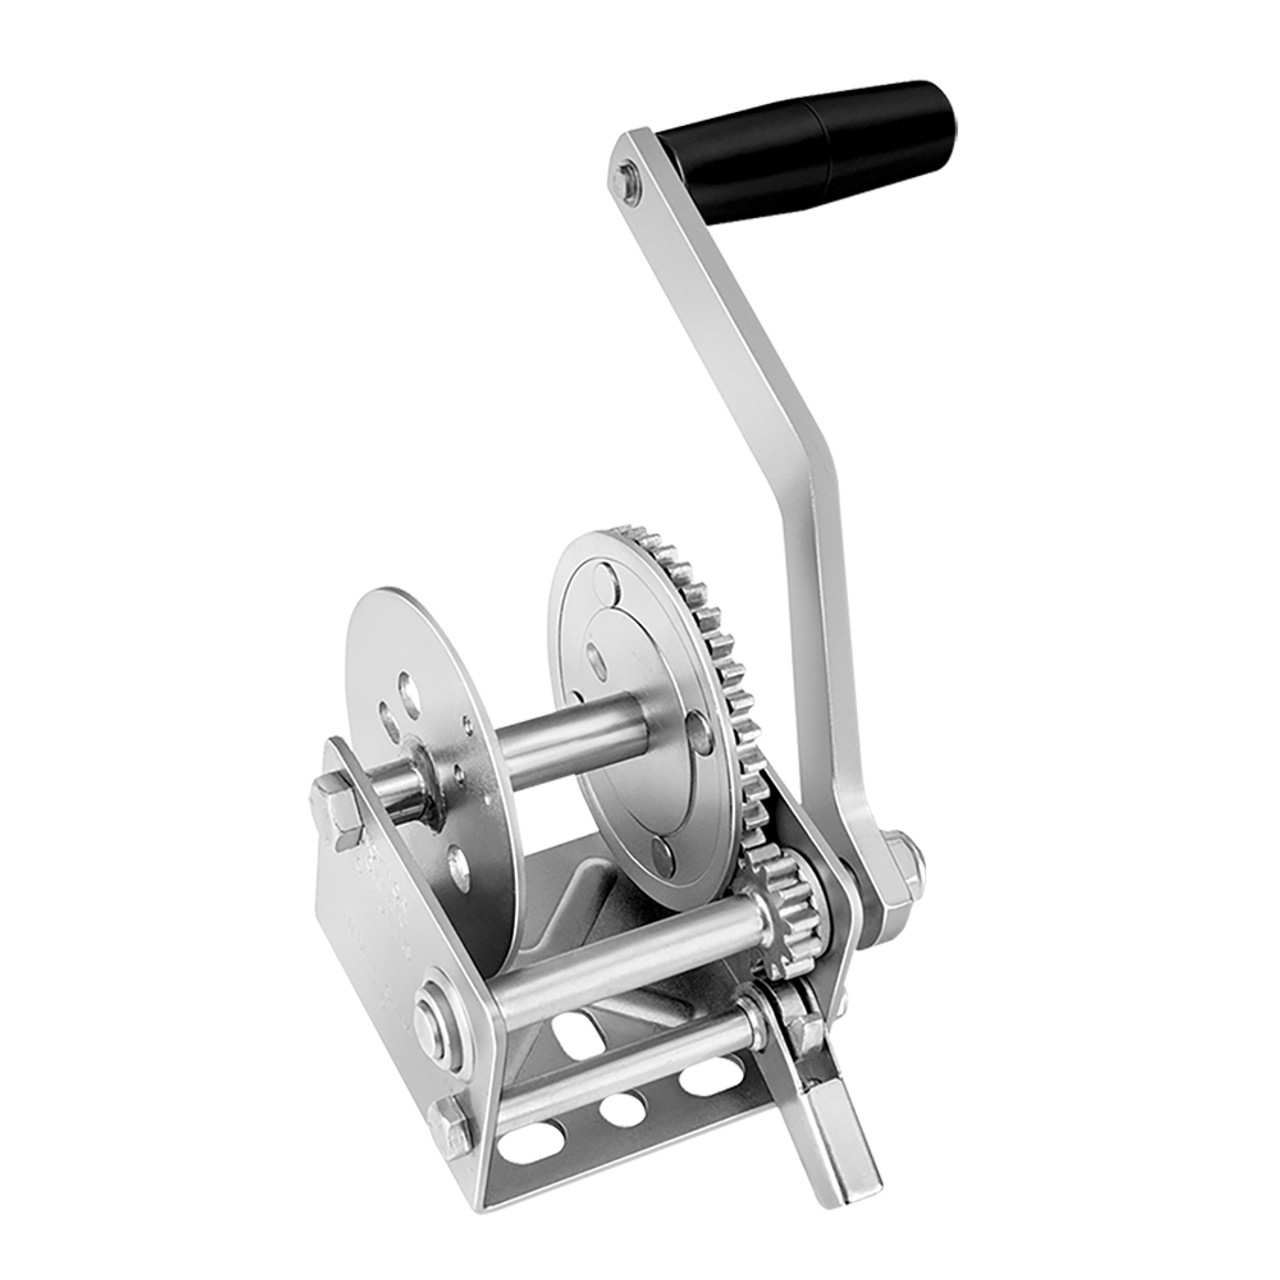 142001 - Fulton 900lb Single Speed Winch - Strap Not Included